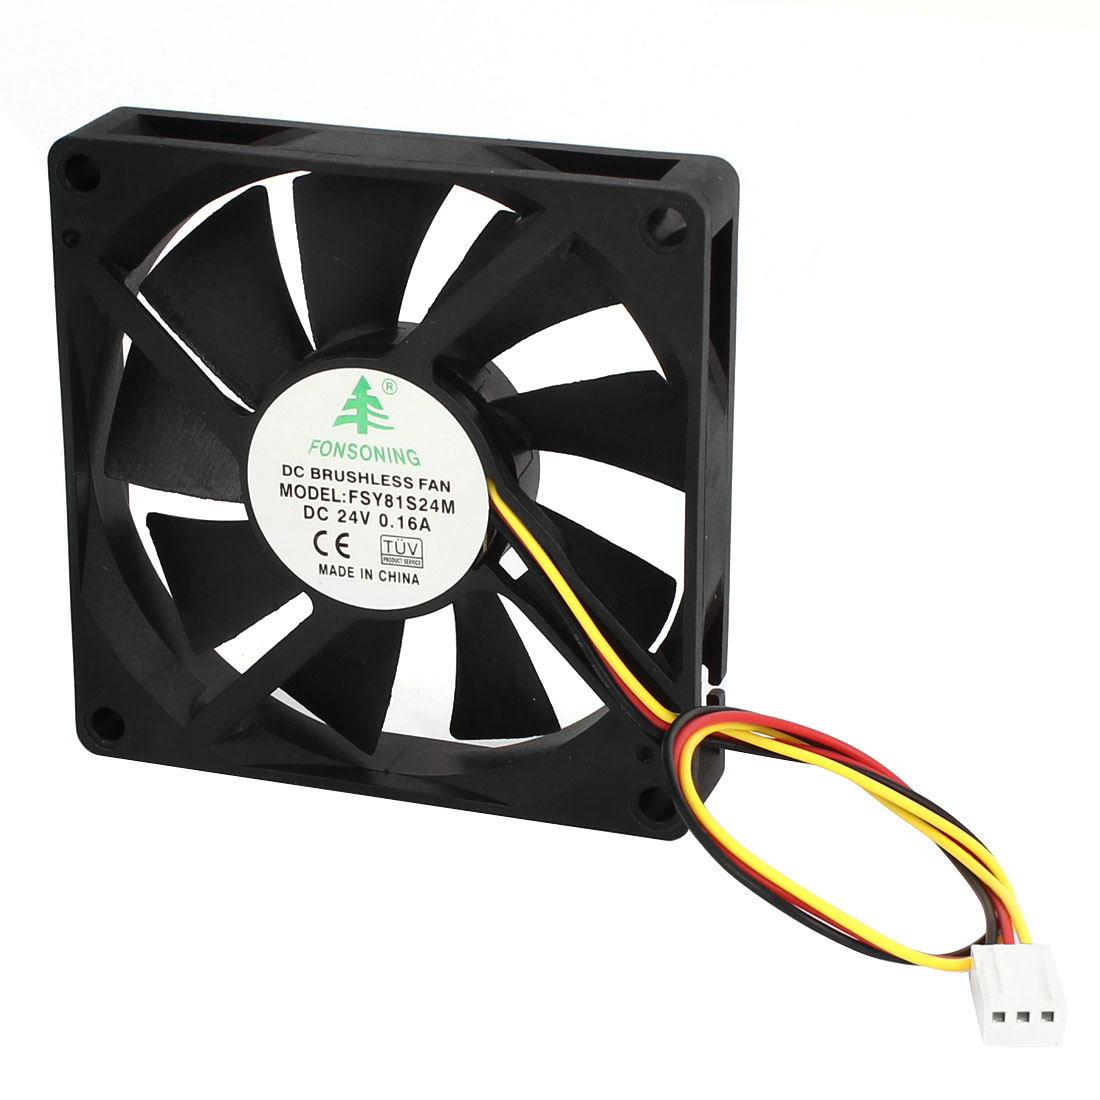 80mmx15mm 8cm 3 Pins Connector Plastic 9 Flabellums Cooling Fan DC 24V 0.16A Black for PC Computer Cases CPU Cooler Radiator